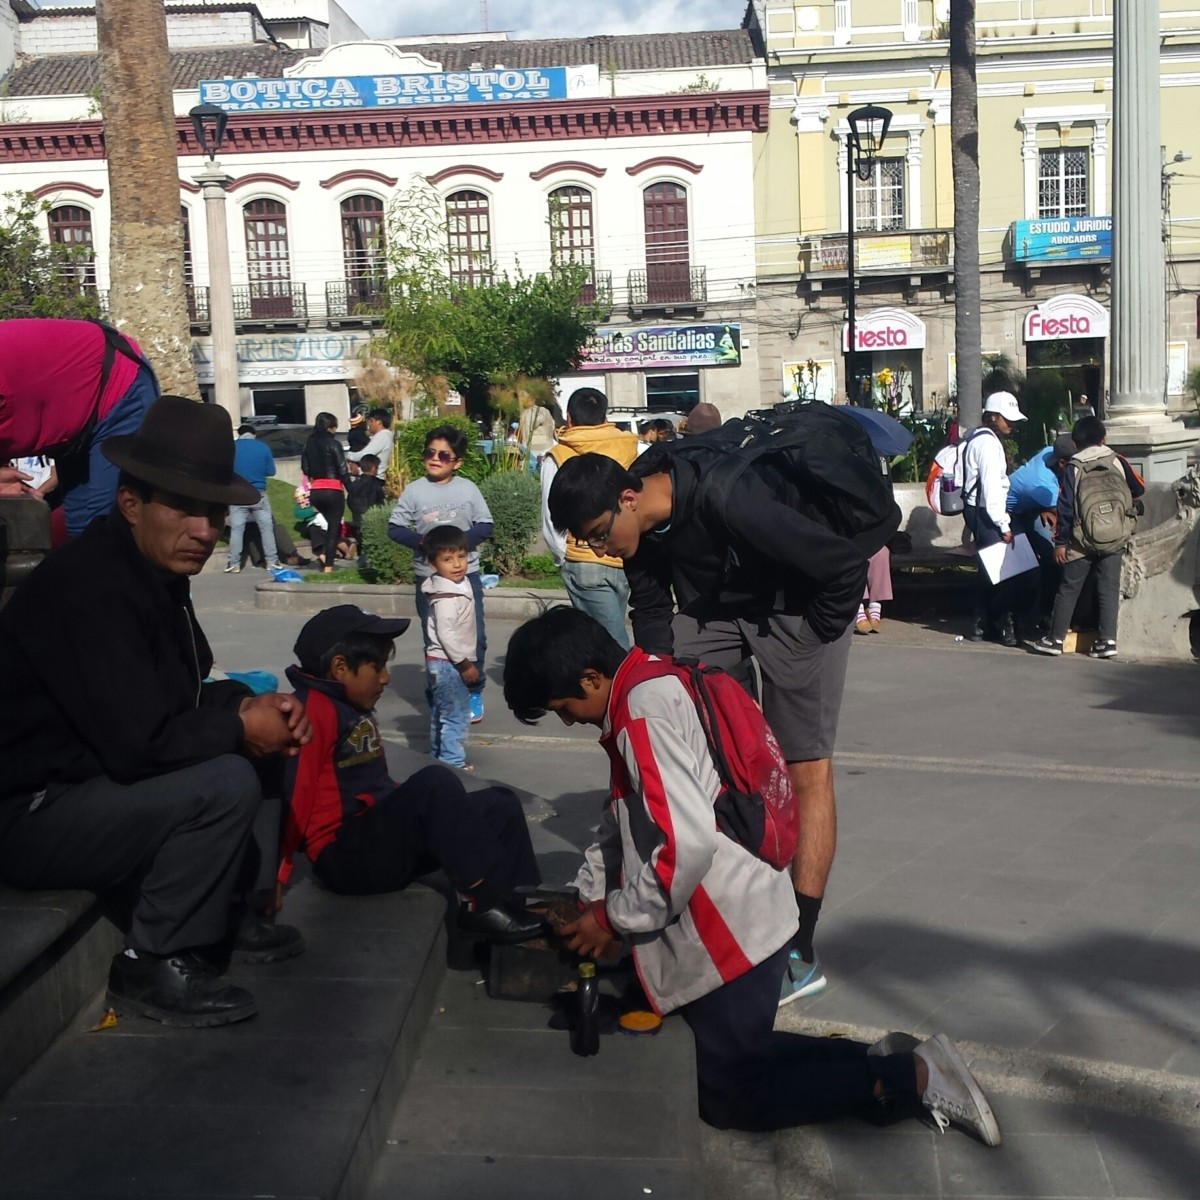 How the other half lives: Spending time in the shoes of Riobamba's Child Workers